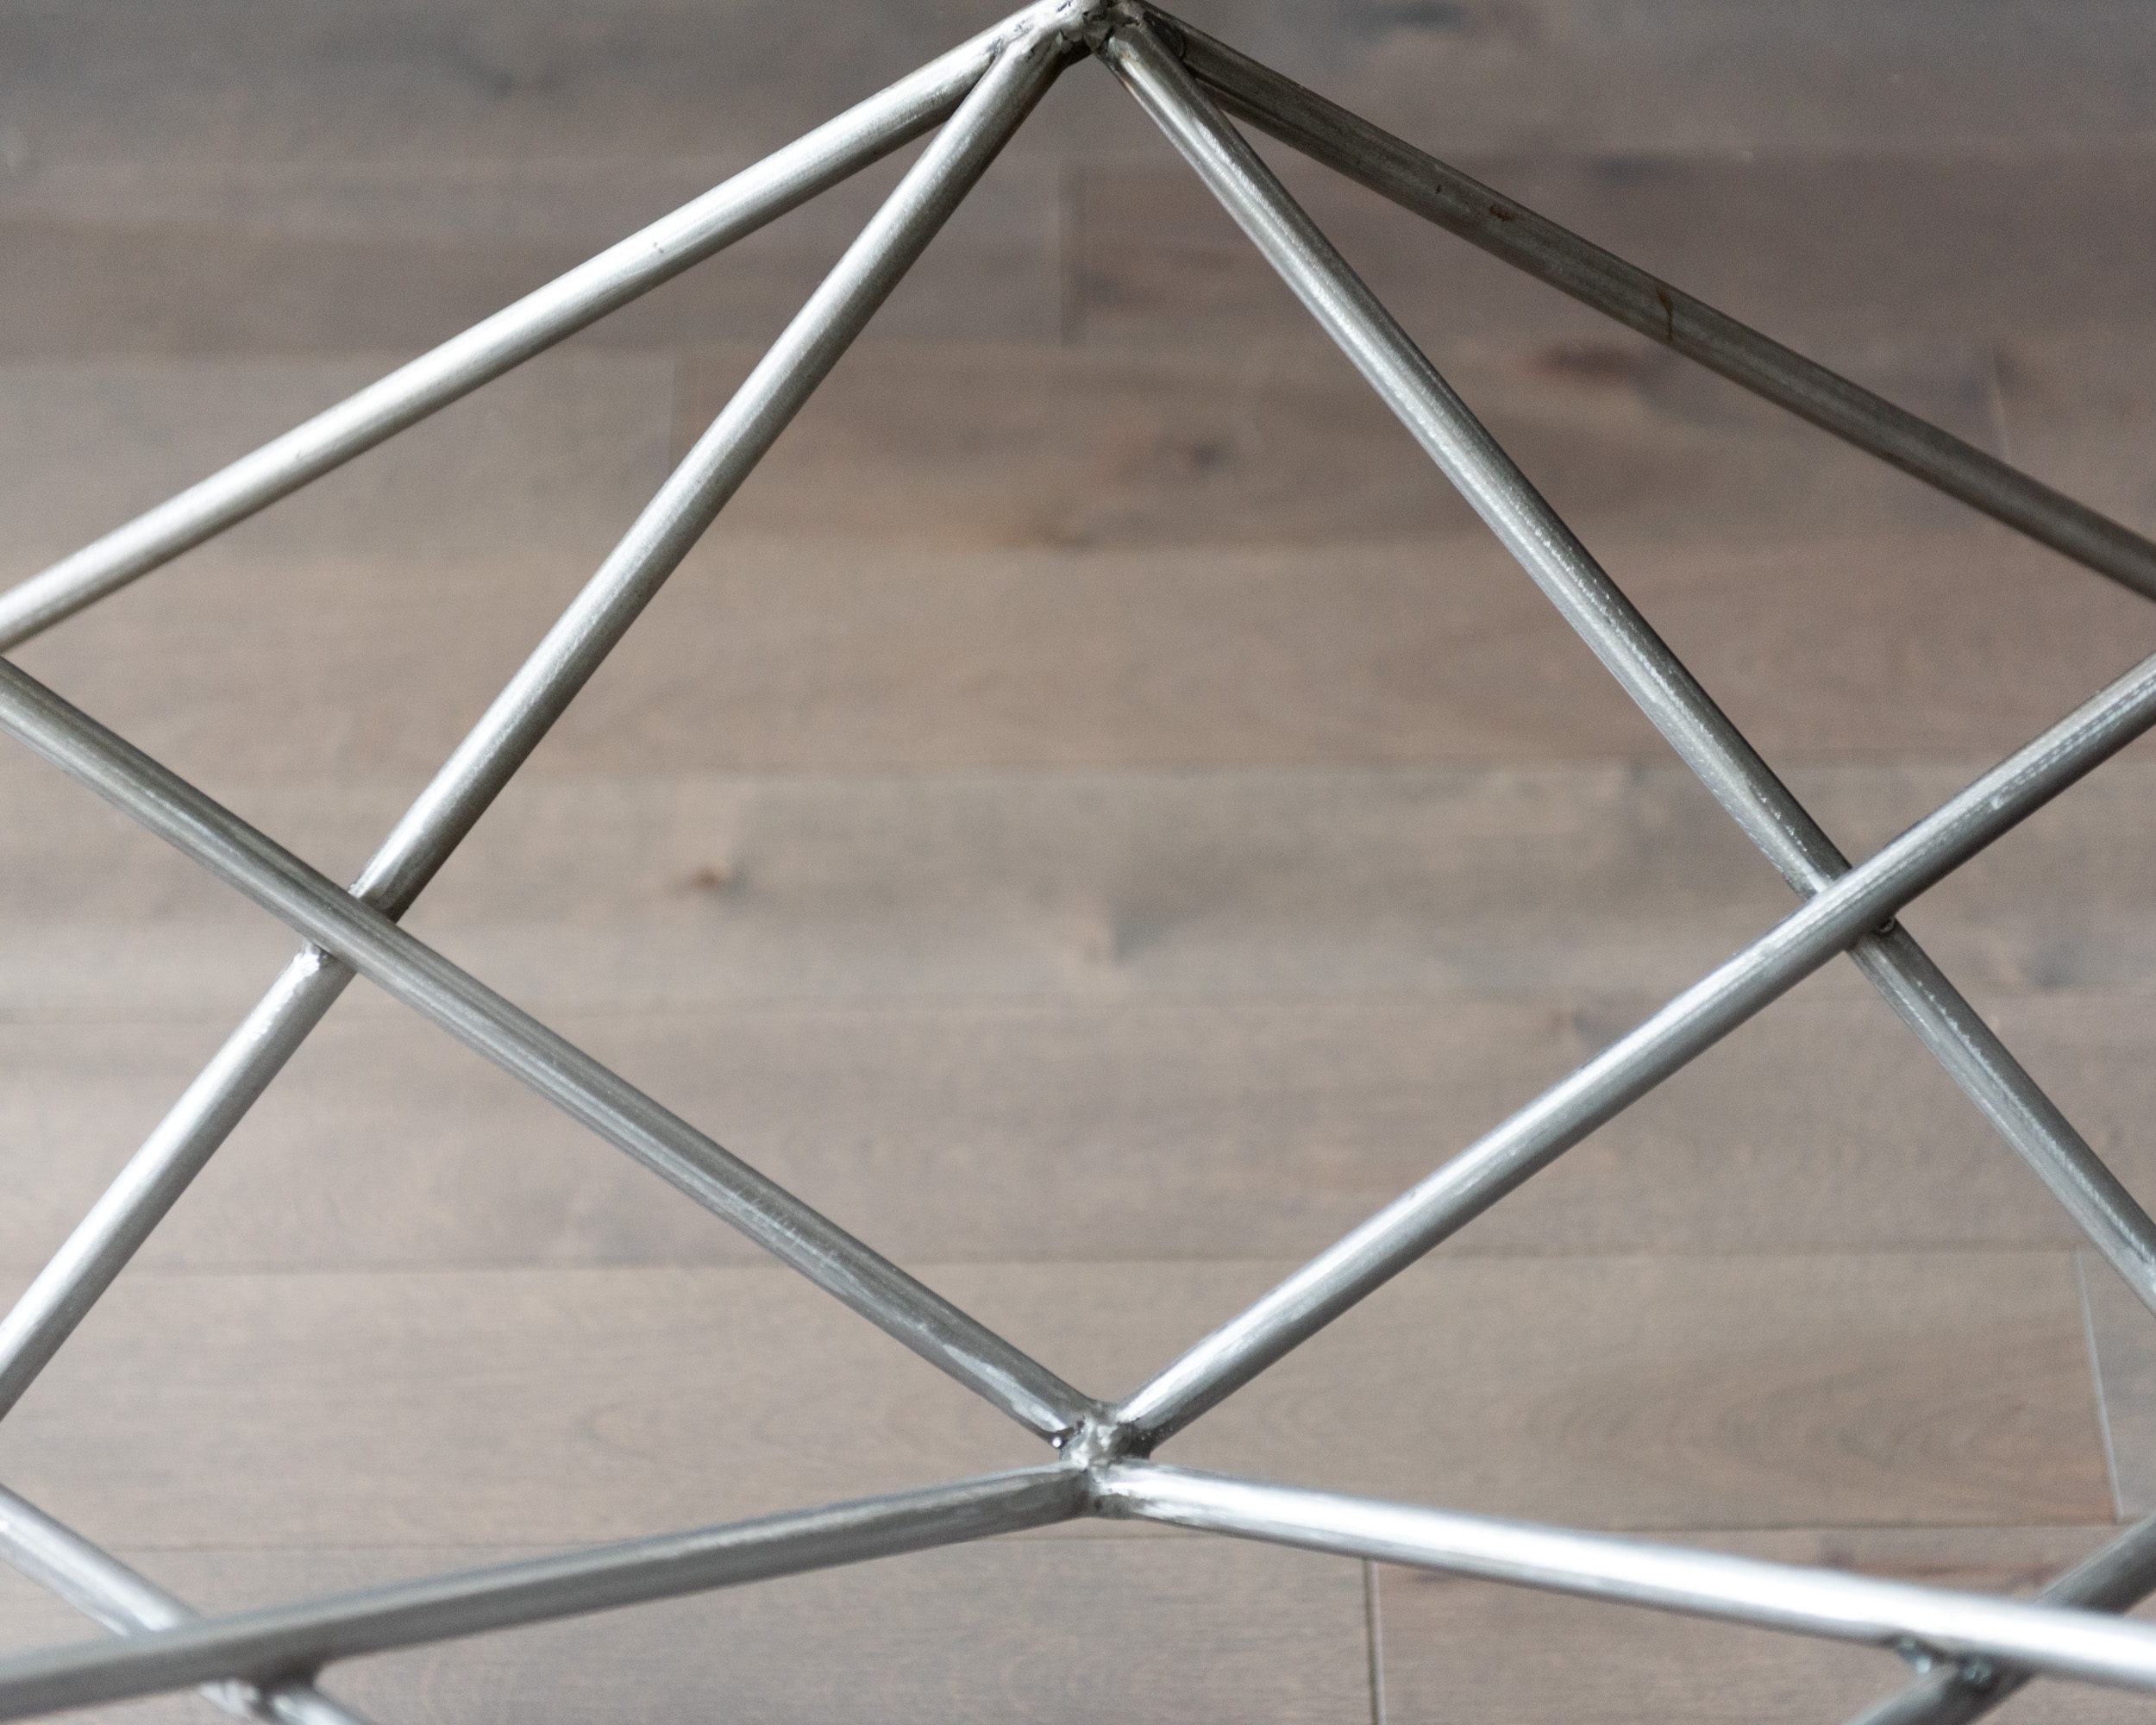 Collaboration with Ludovic Dubeau. Steel and metal table designed and fabricated in 2017.